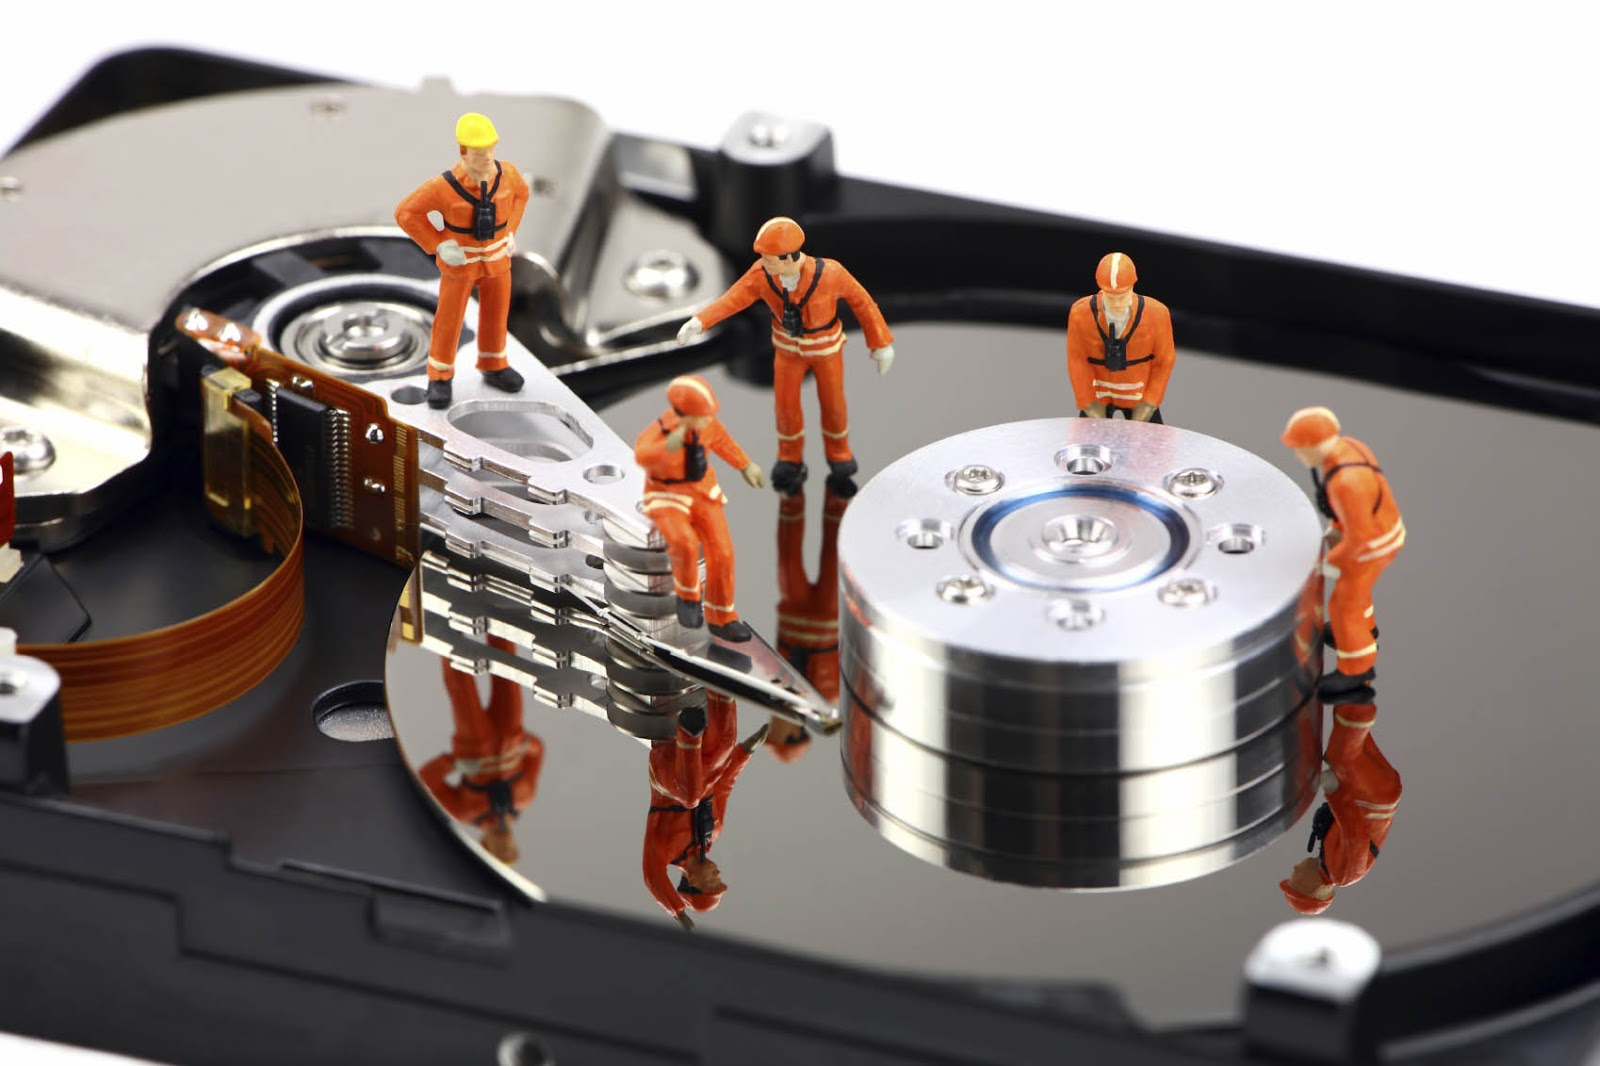 Connaissez-vous EaseUS Data Recovery Wizard Free ?